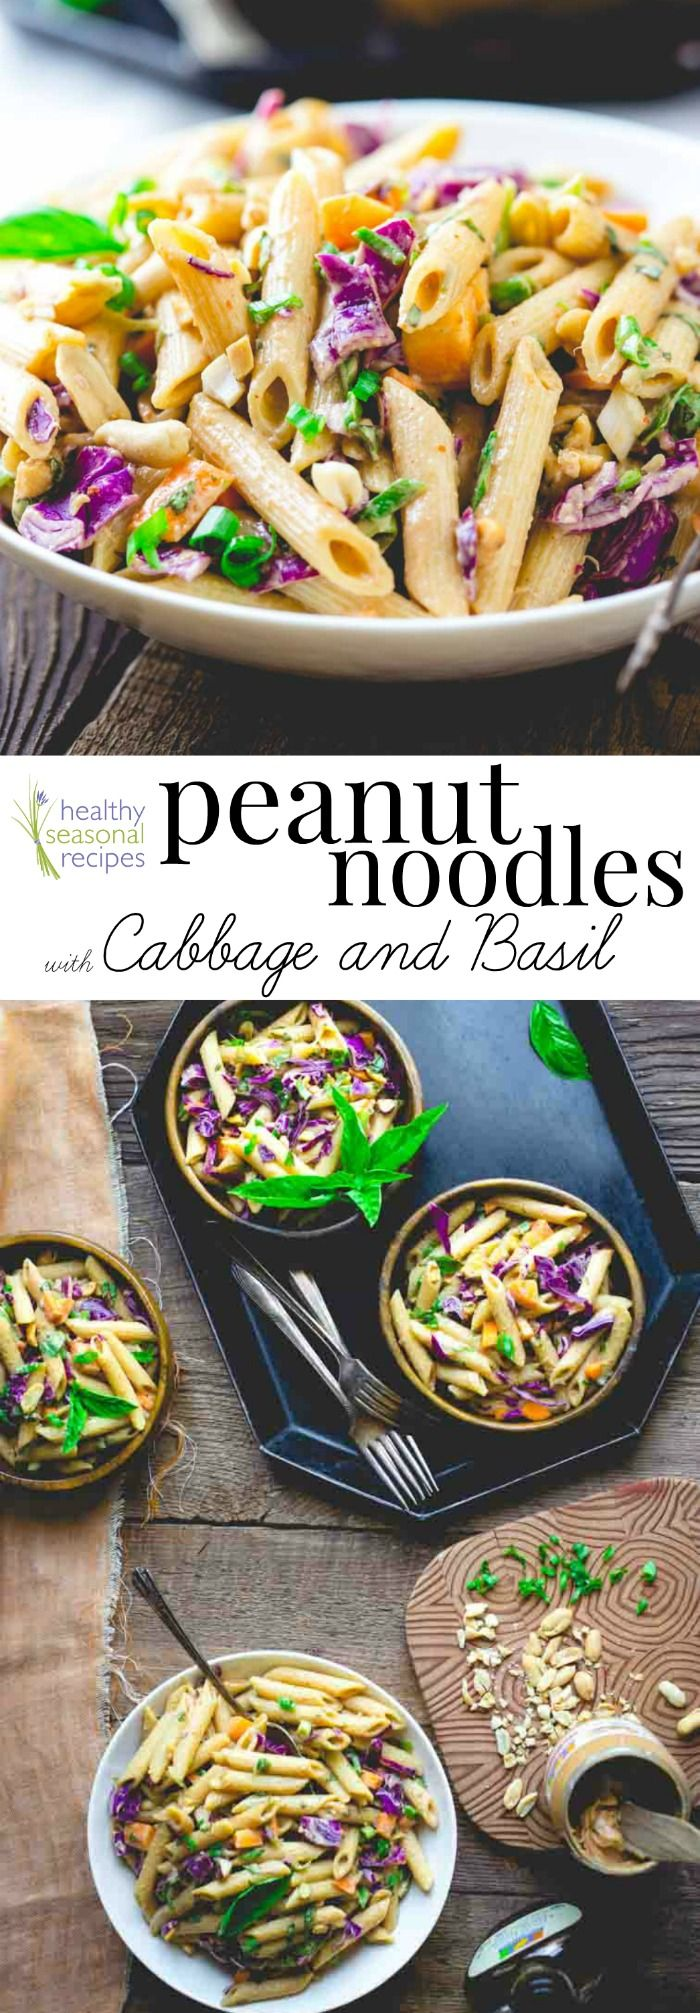 Sponsored: peanut noodles with cabbage and basil - Healthy Seasonal Recipes | Vegan and only 15 minutes of prep!